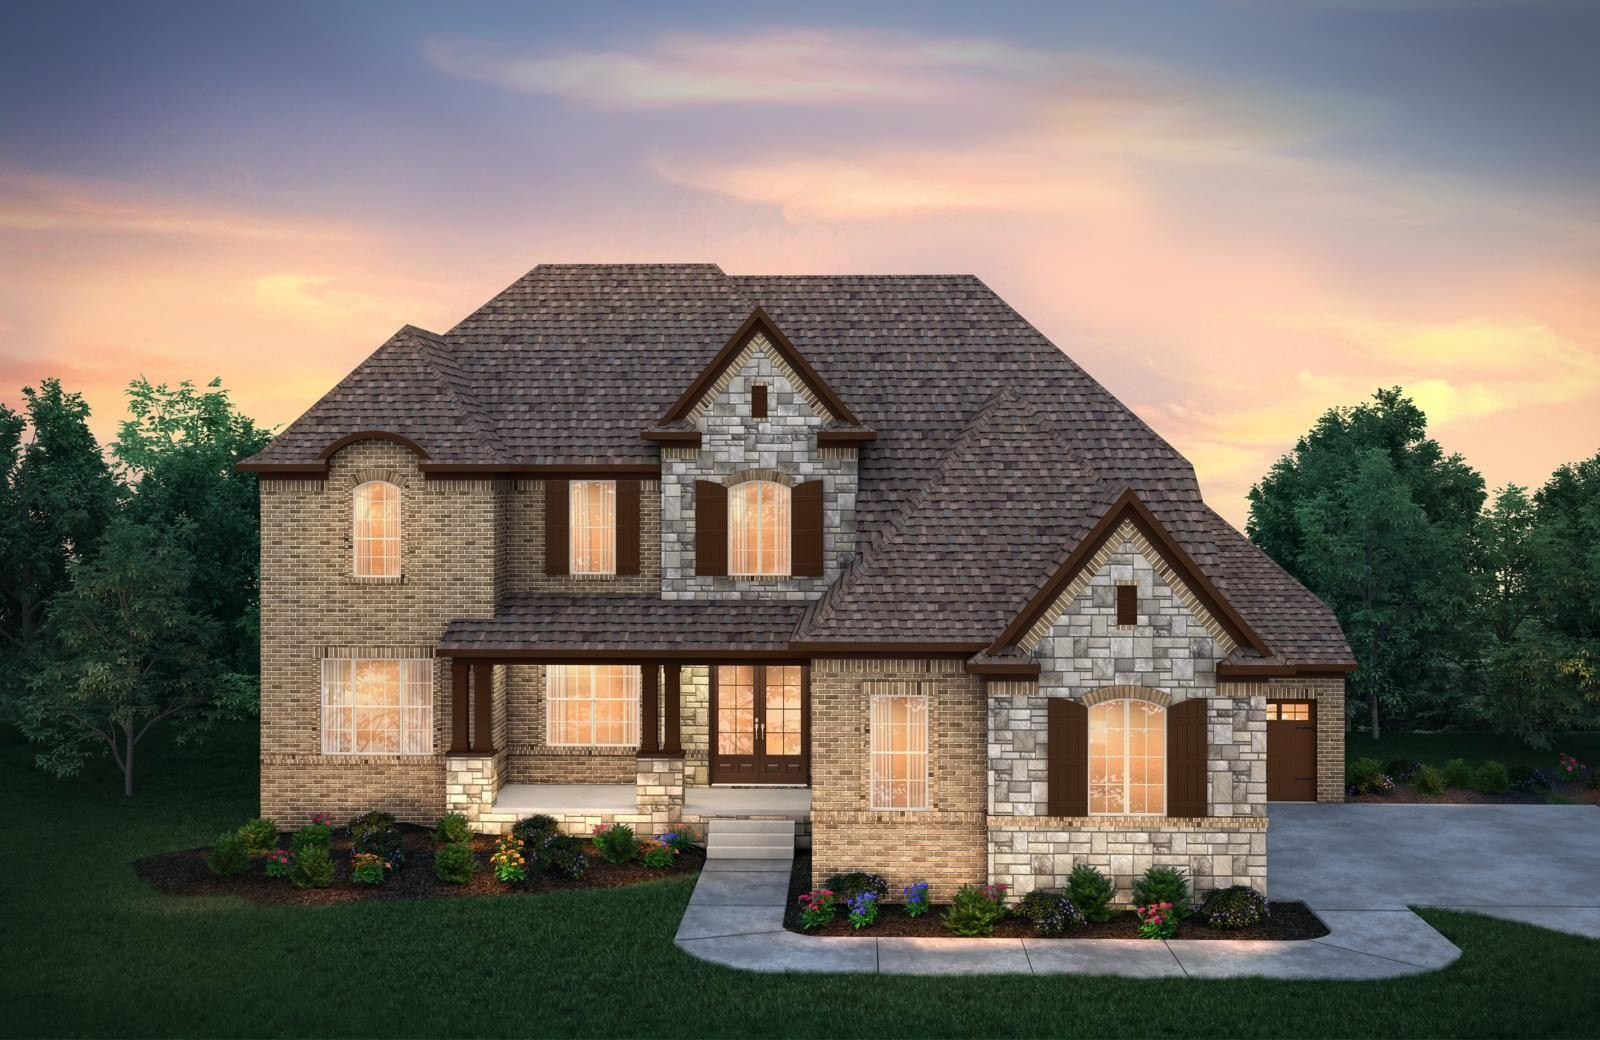 Photo of 1883 Traditions Circle #37, Brentwood, TN 37027 (MLS # 2261783)